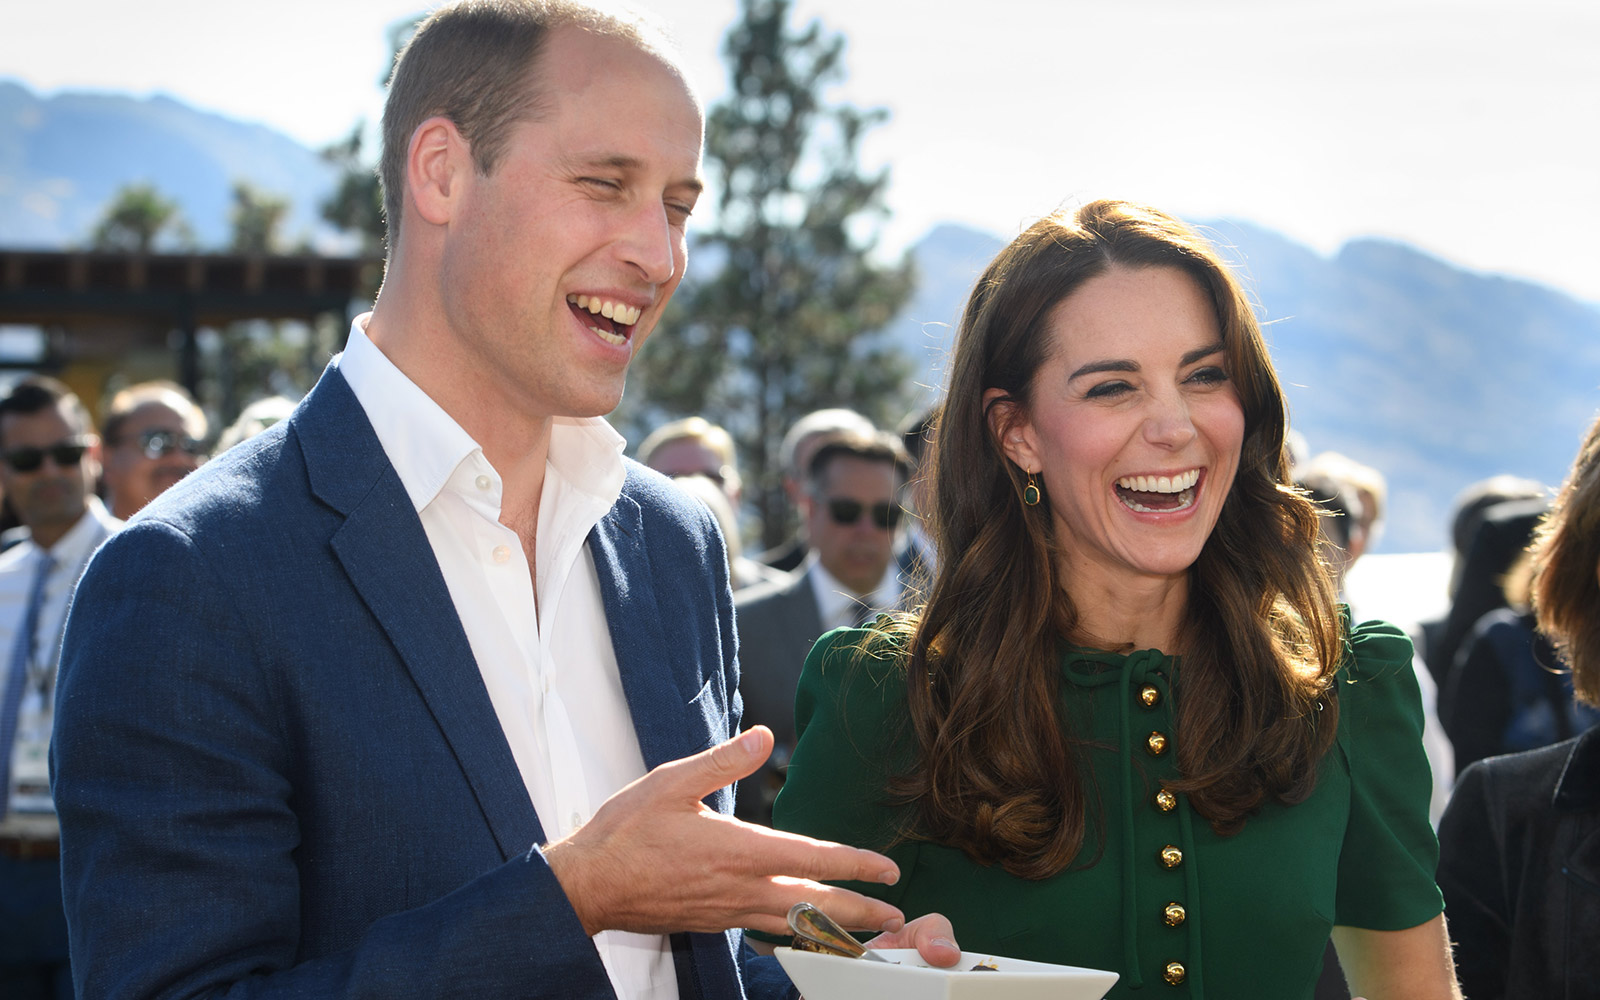 Prince William and Kate Middleton at Mission Hill Windery in Kelowna, Canada